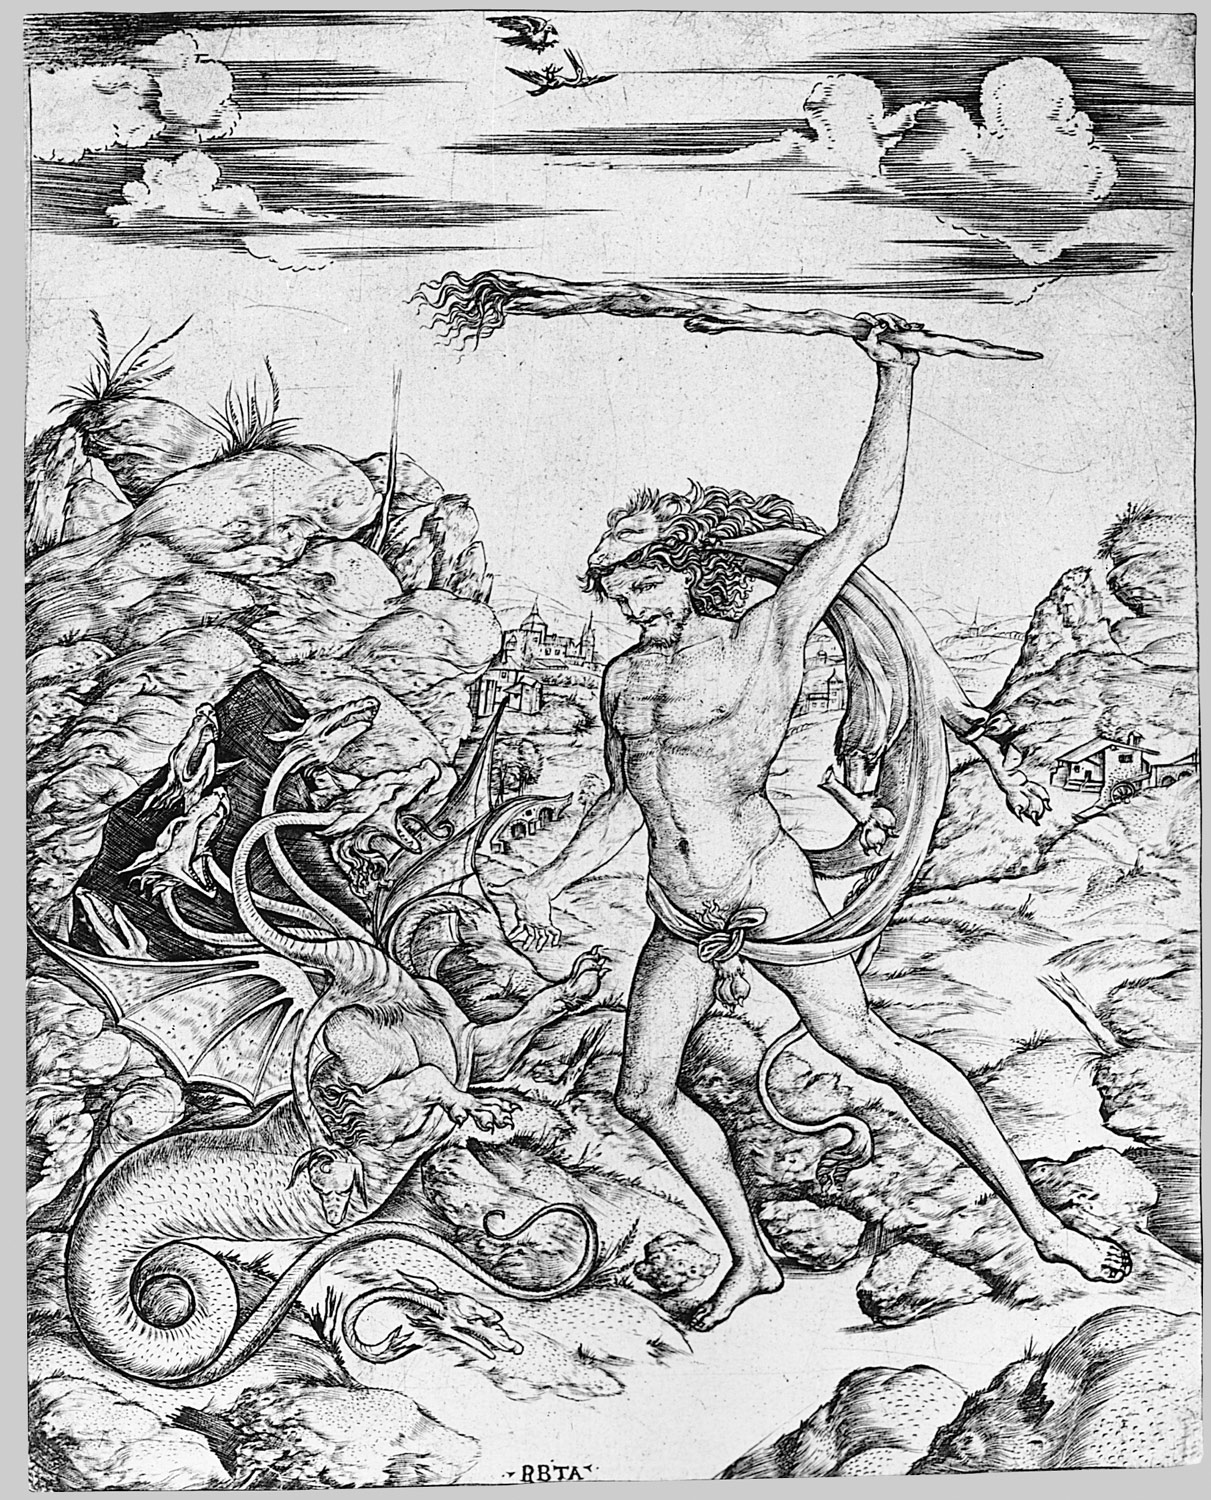 Hercules and the Hydra; wielding a torch he attacks the winged, multi-headed Hydra in rocky landscape, a hawk attacks a heron in the sky